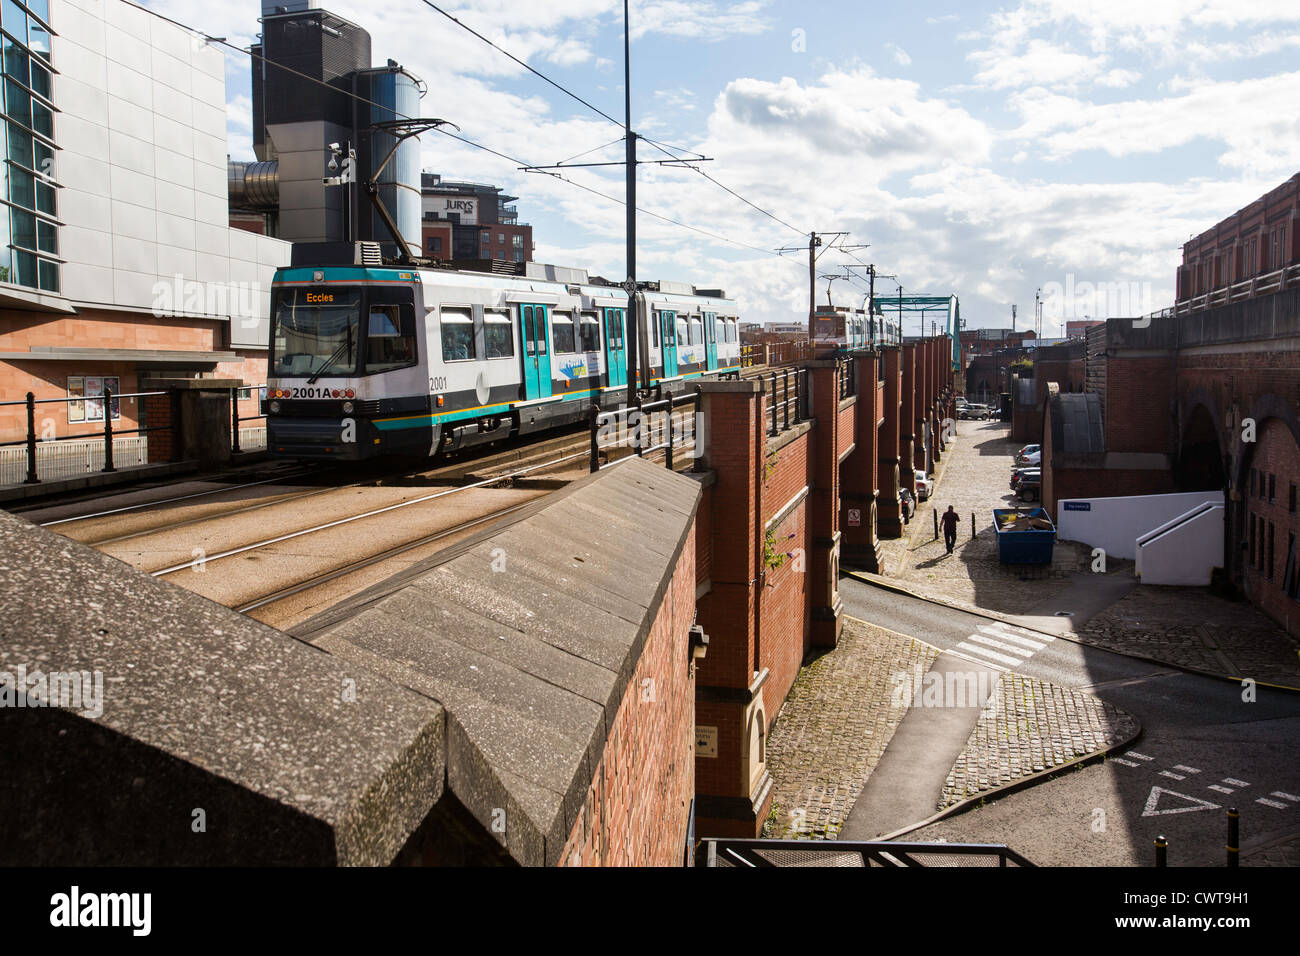 A tram in Manchester city centre. - Stock Image